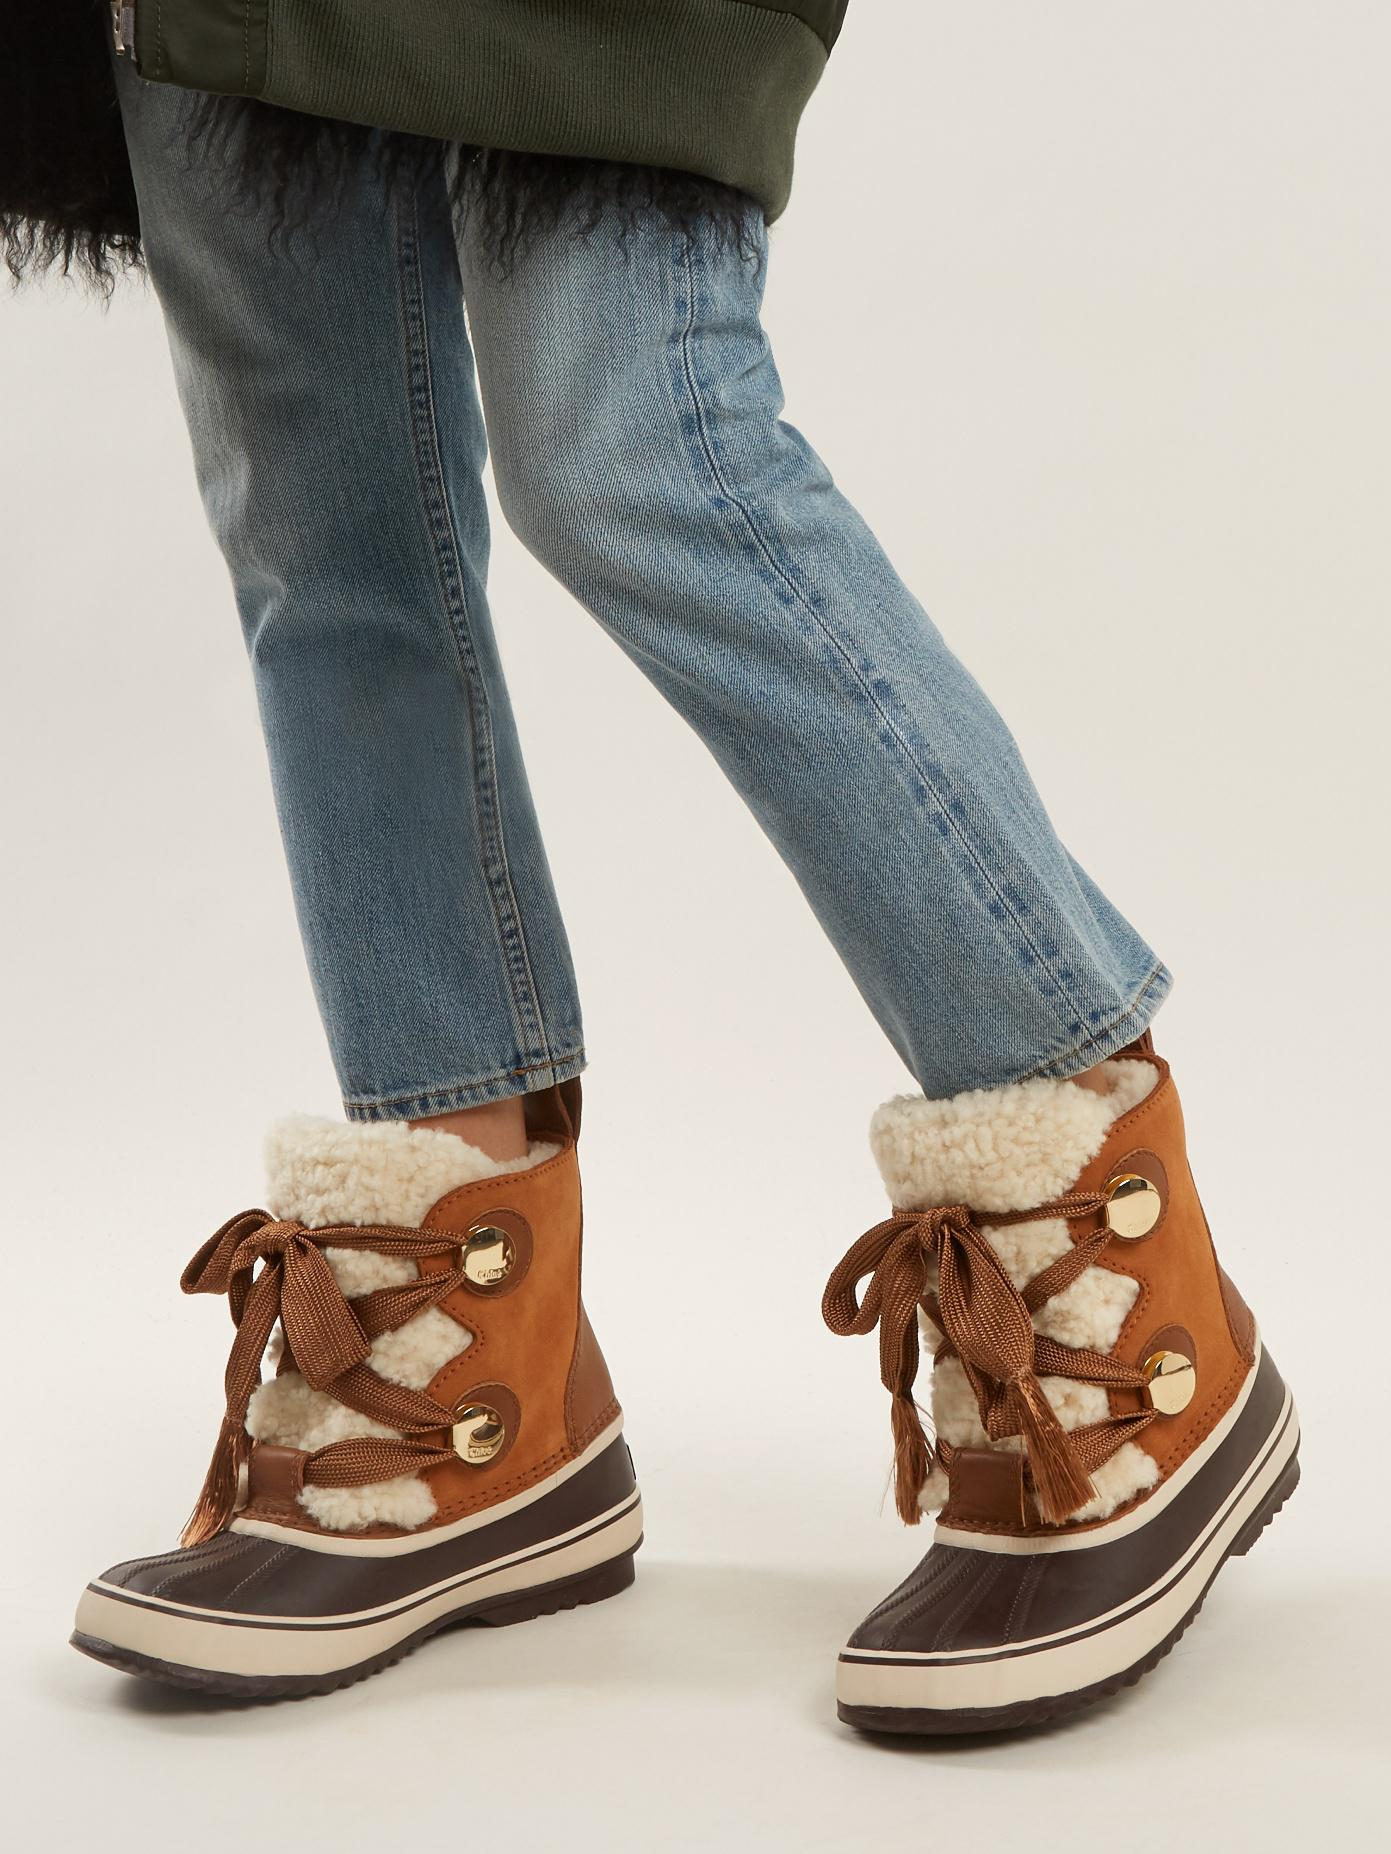 Lyst Chlo 233 X Sorel Suede Apr 232 S Ski Boots In Brown